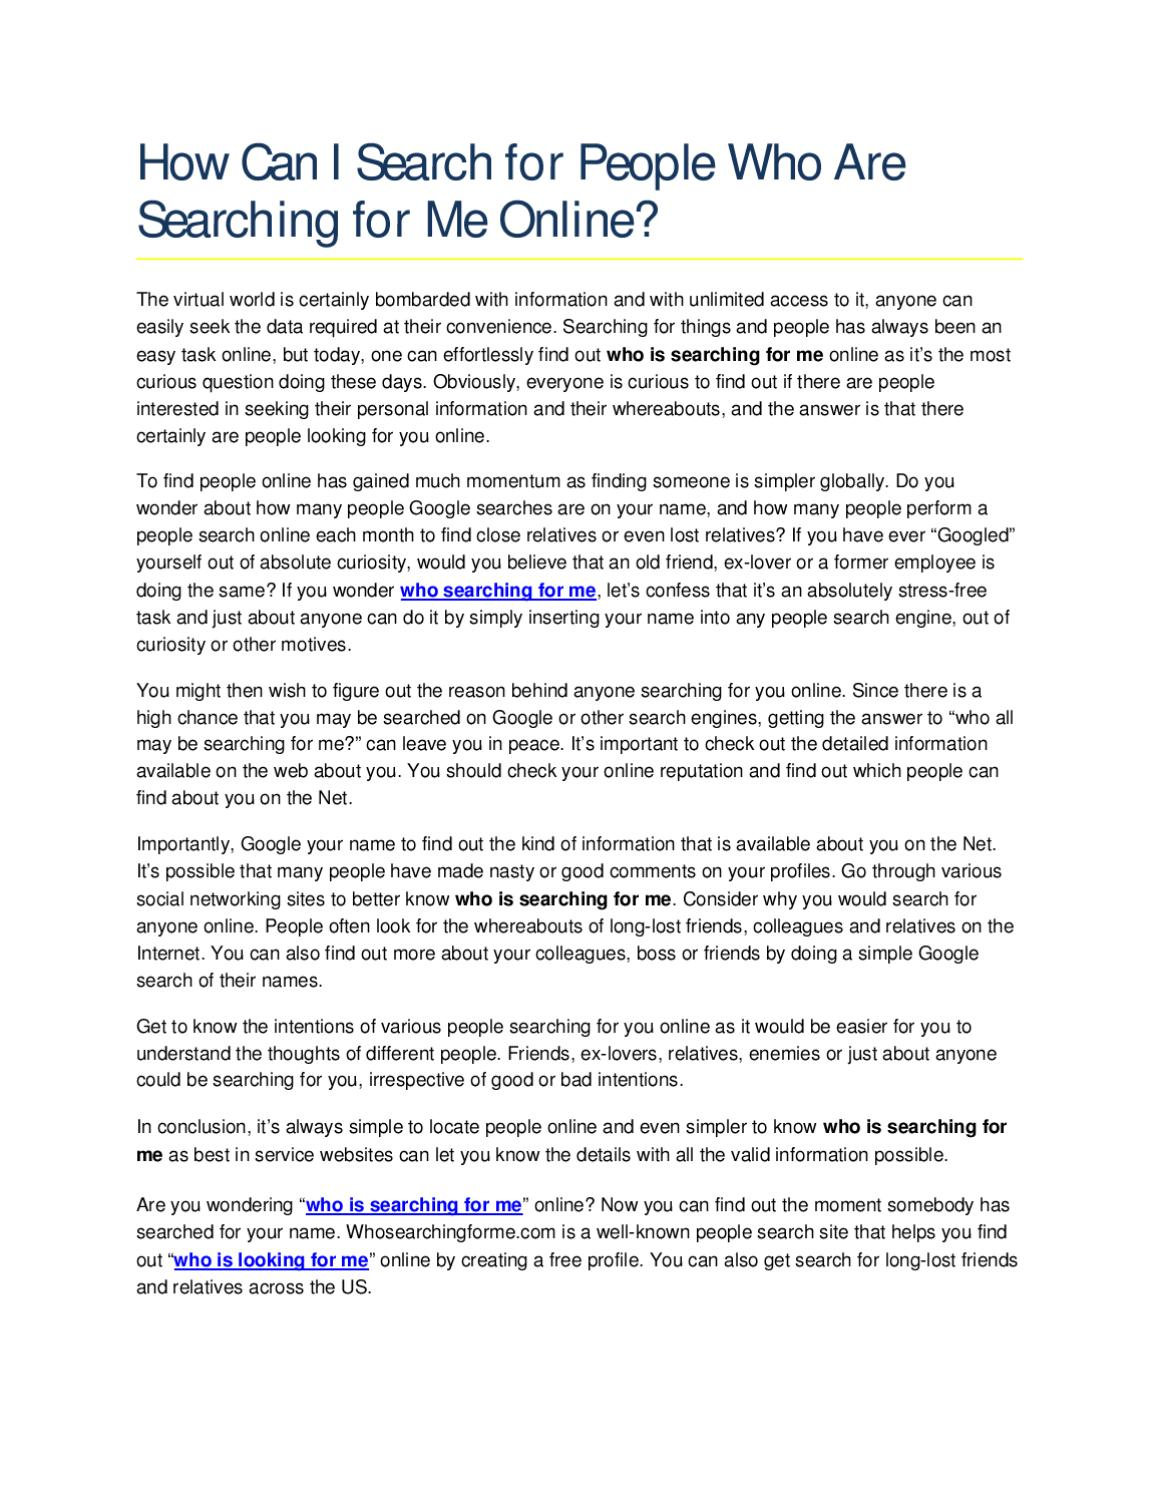 find out who is searching for me online for free